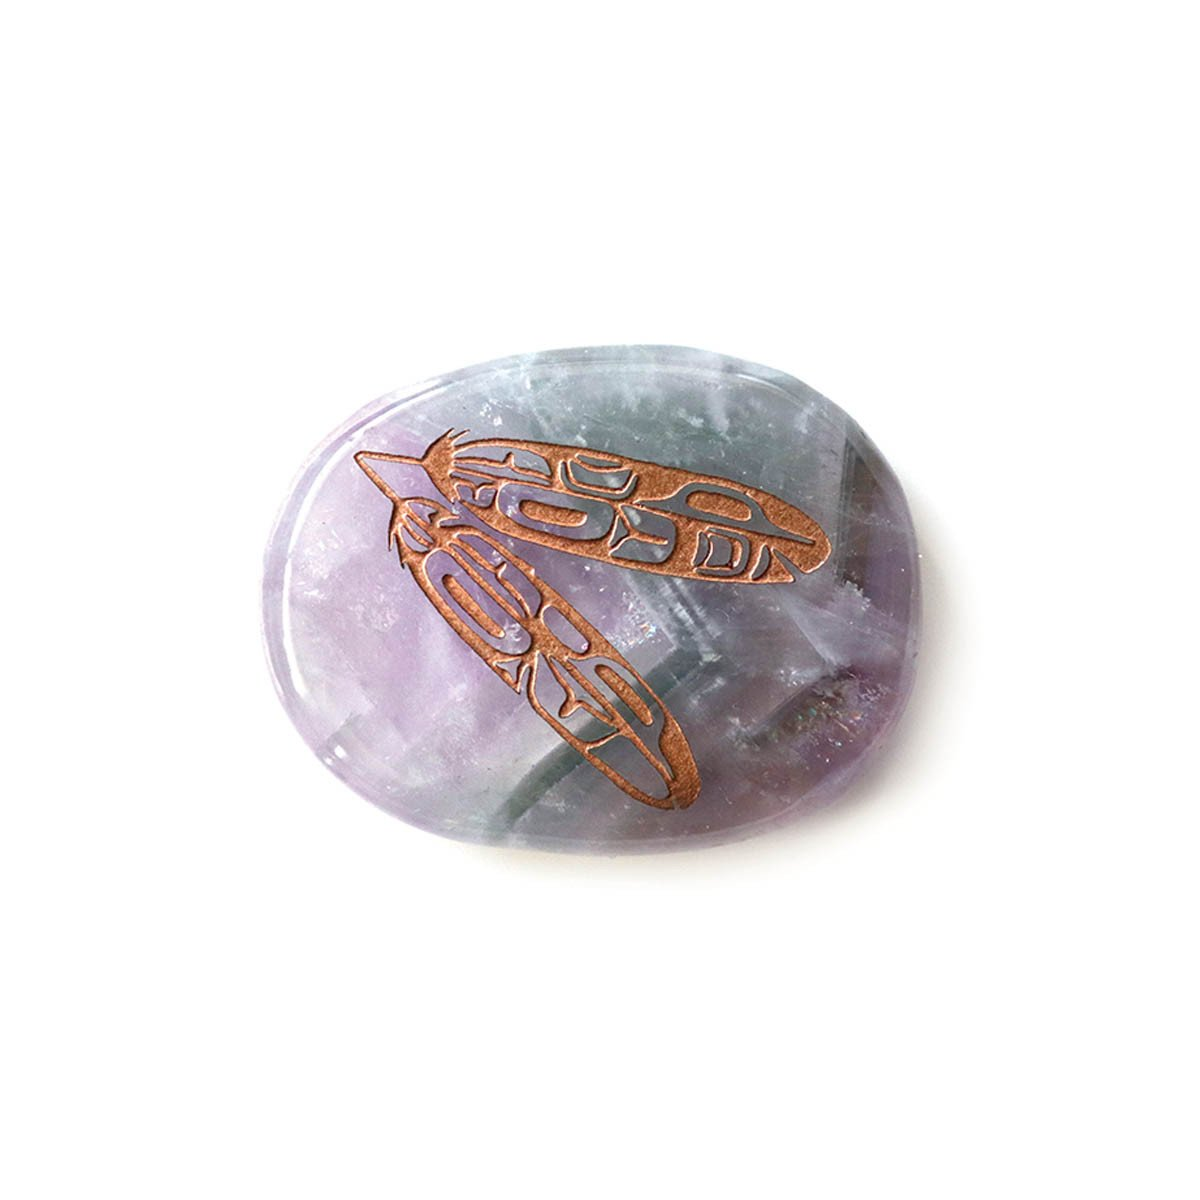 Eagle Feathers - Amethyst Spirit Stone